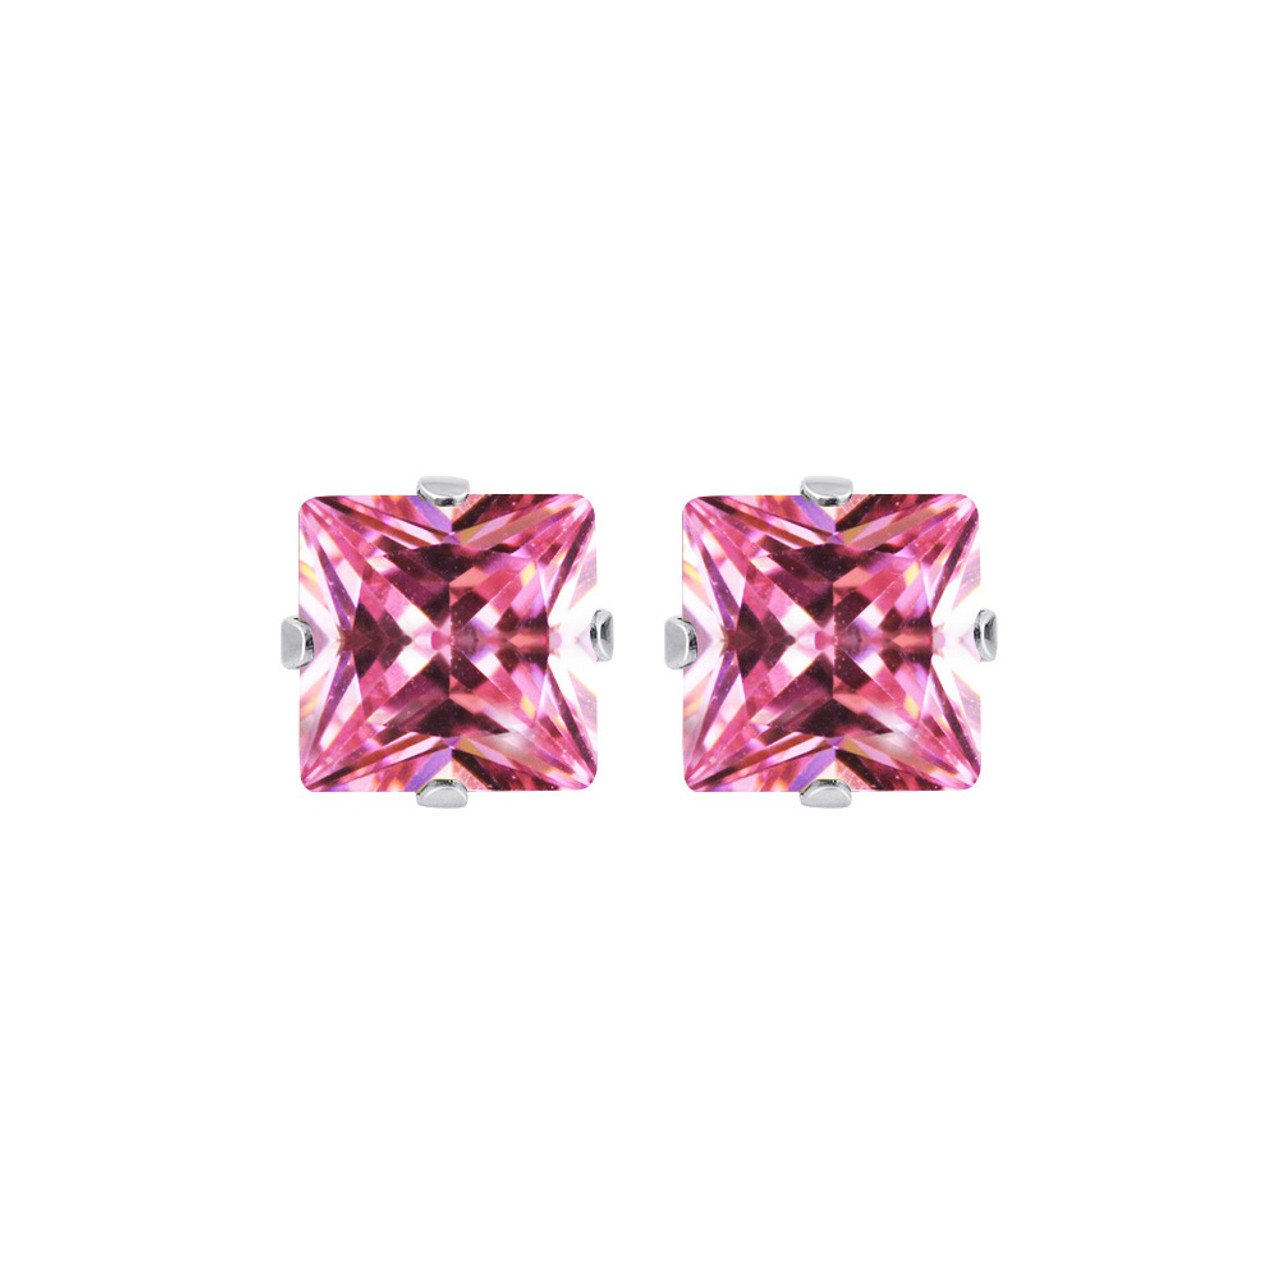 7mm Square Pink Cubic Zirconia CZ Sterling Silver Stud Earrings